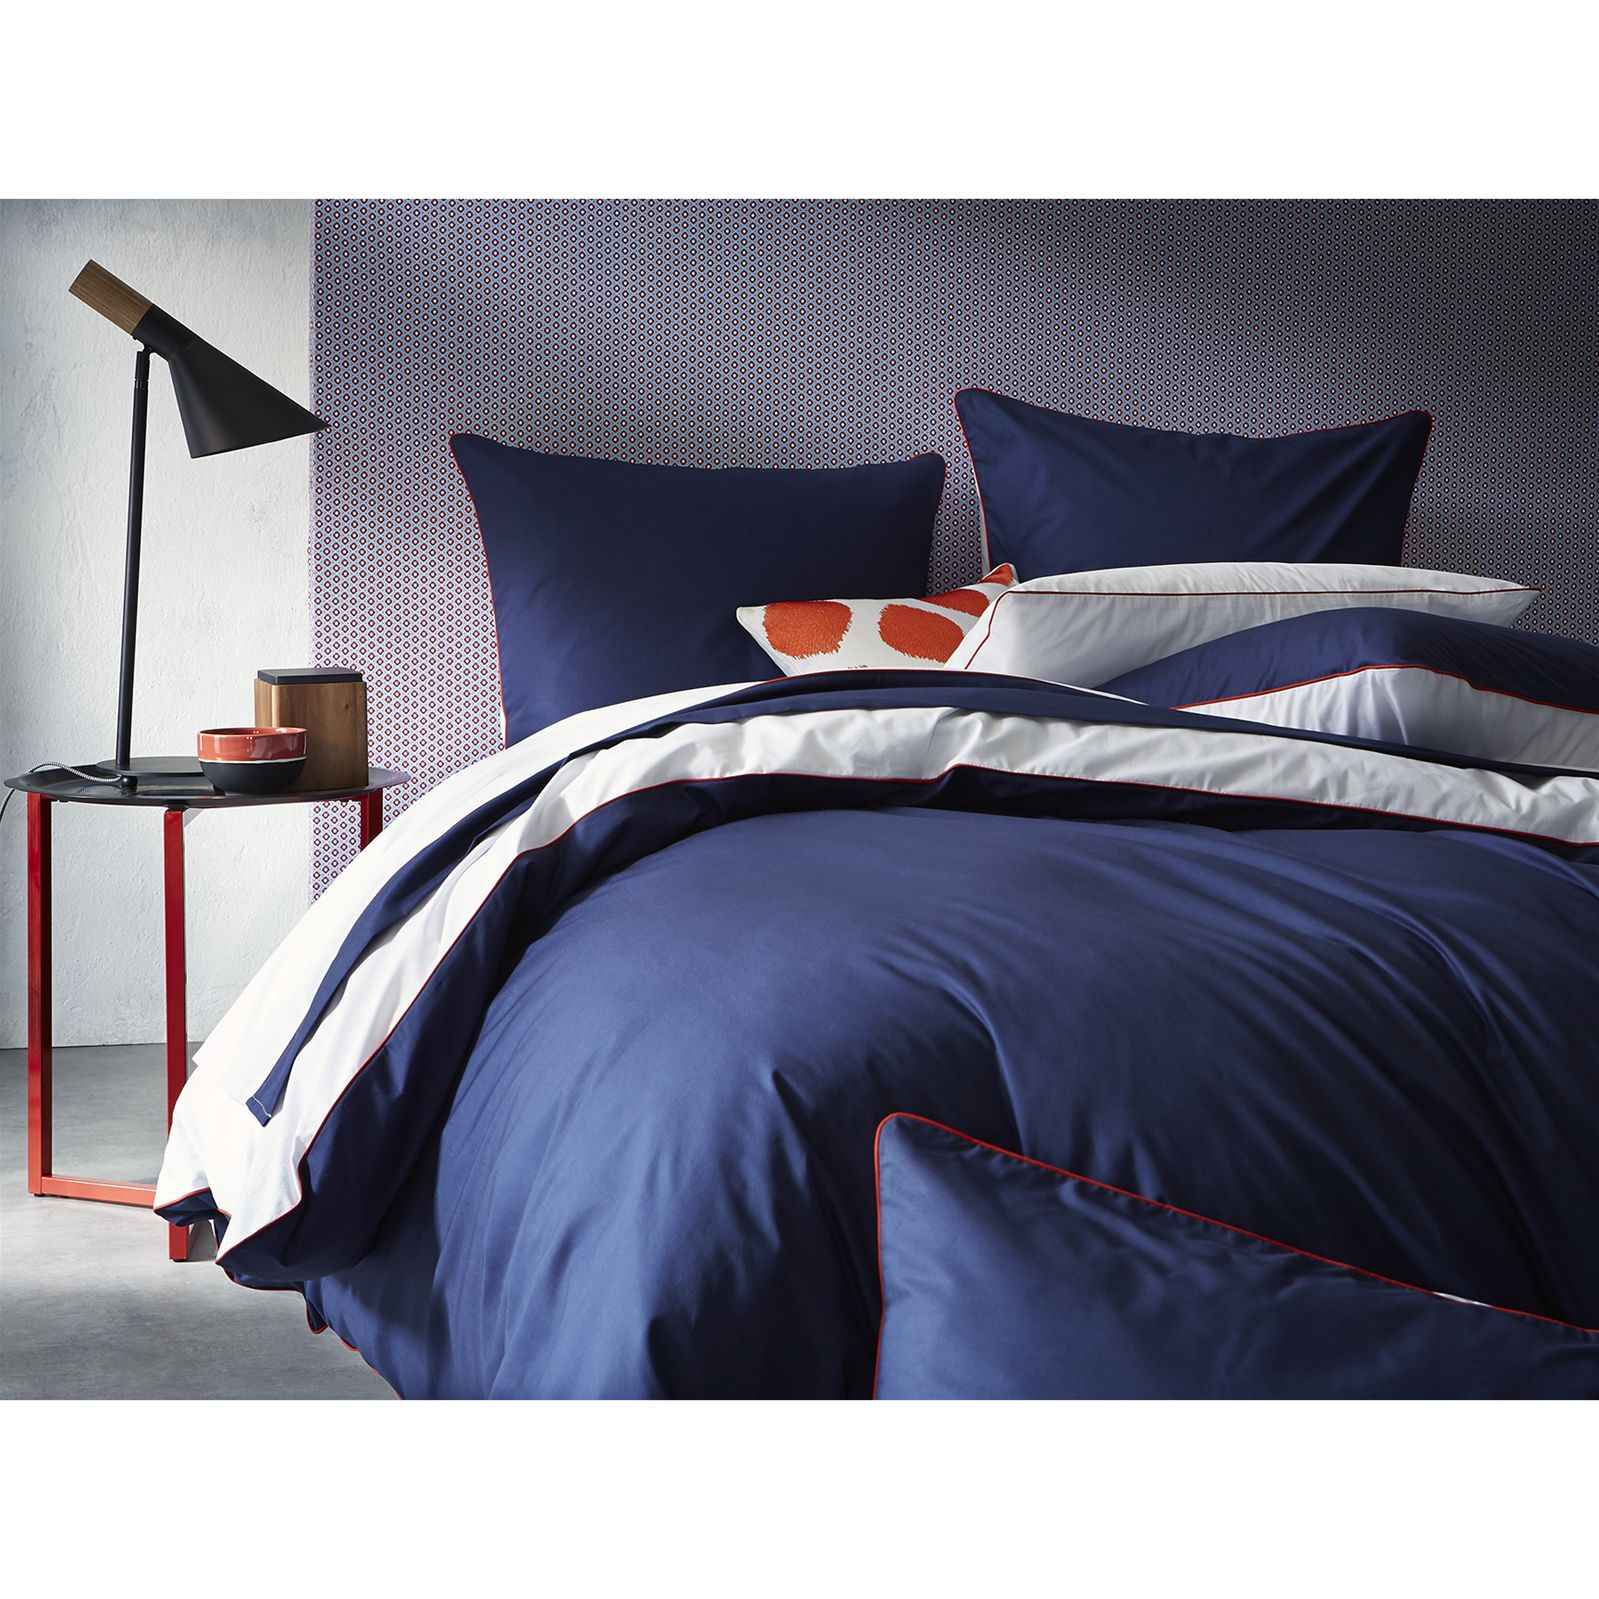 blanc cerise complicit gourmande housse de couette percale 80 fils cm bleu brandalley. Black Bedroom Furniture Sets. Home Design Ideas